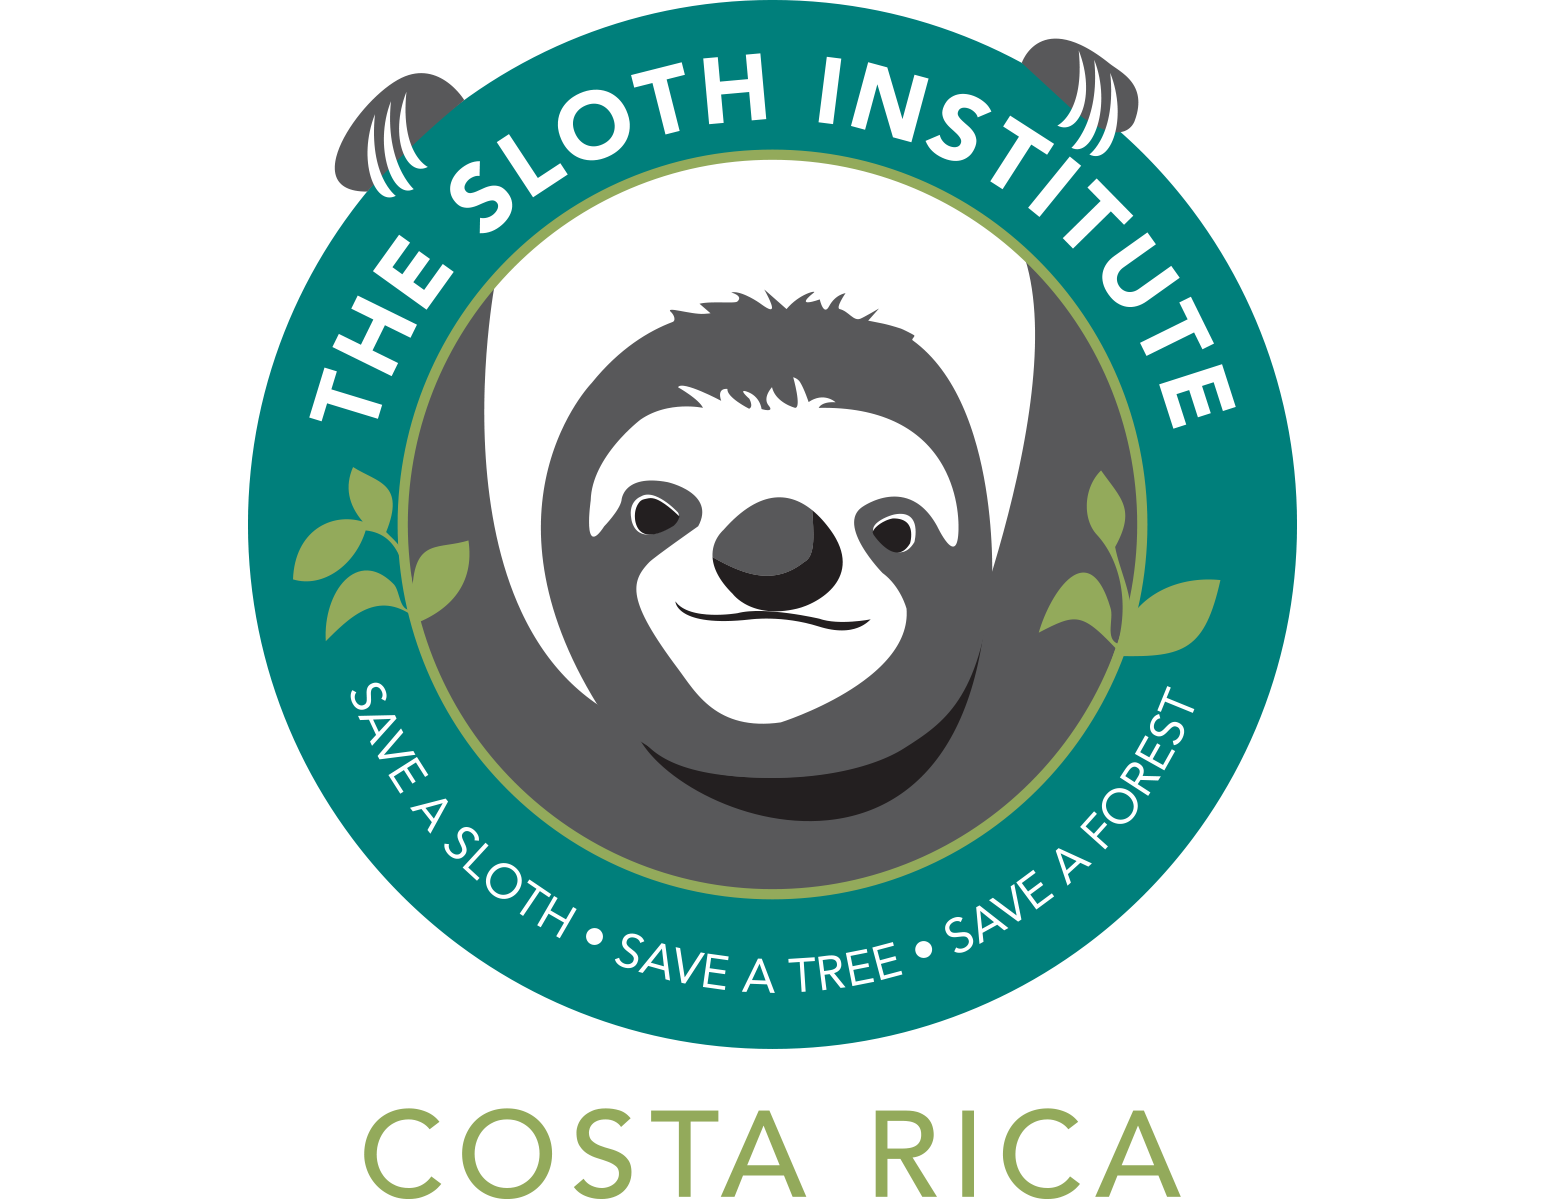 Slothinstitute new logo